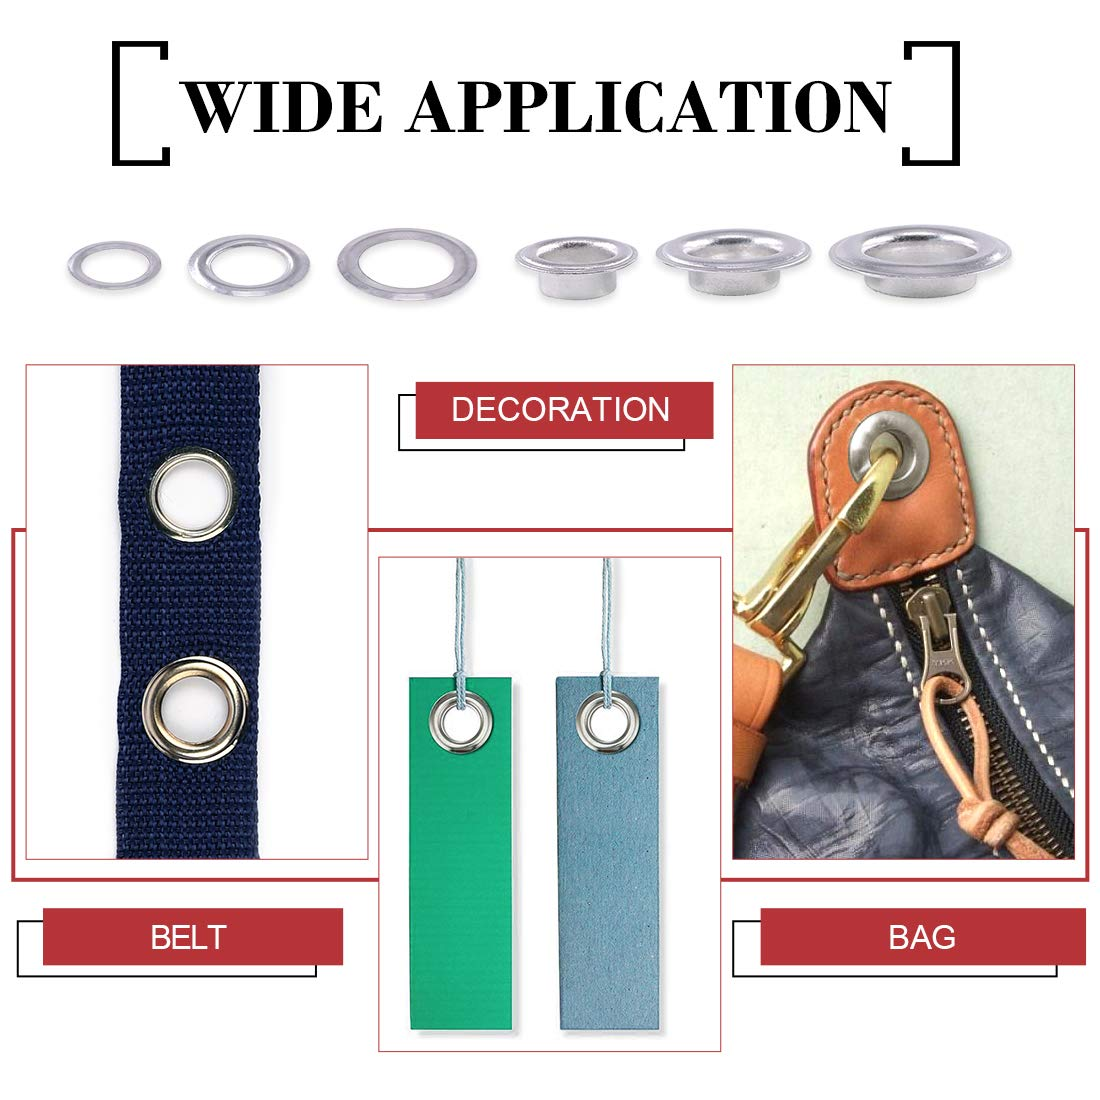 """Hilitchi 230 Sets 2/5"""" 1/2"""" 14/25"""" Aluminum Heavy Duty Grommets Eyelets with Washers for Curtain Leather Canvas Belts and DIY with Storage Box by Hilitchi (Image #6)"""